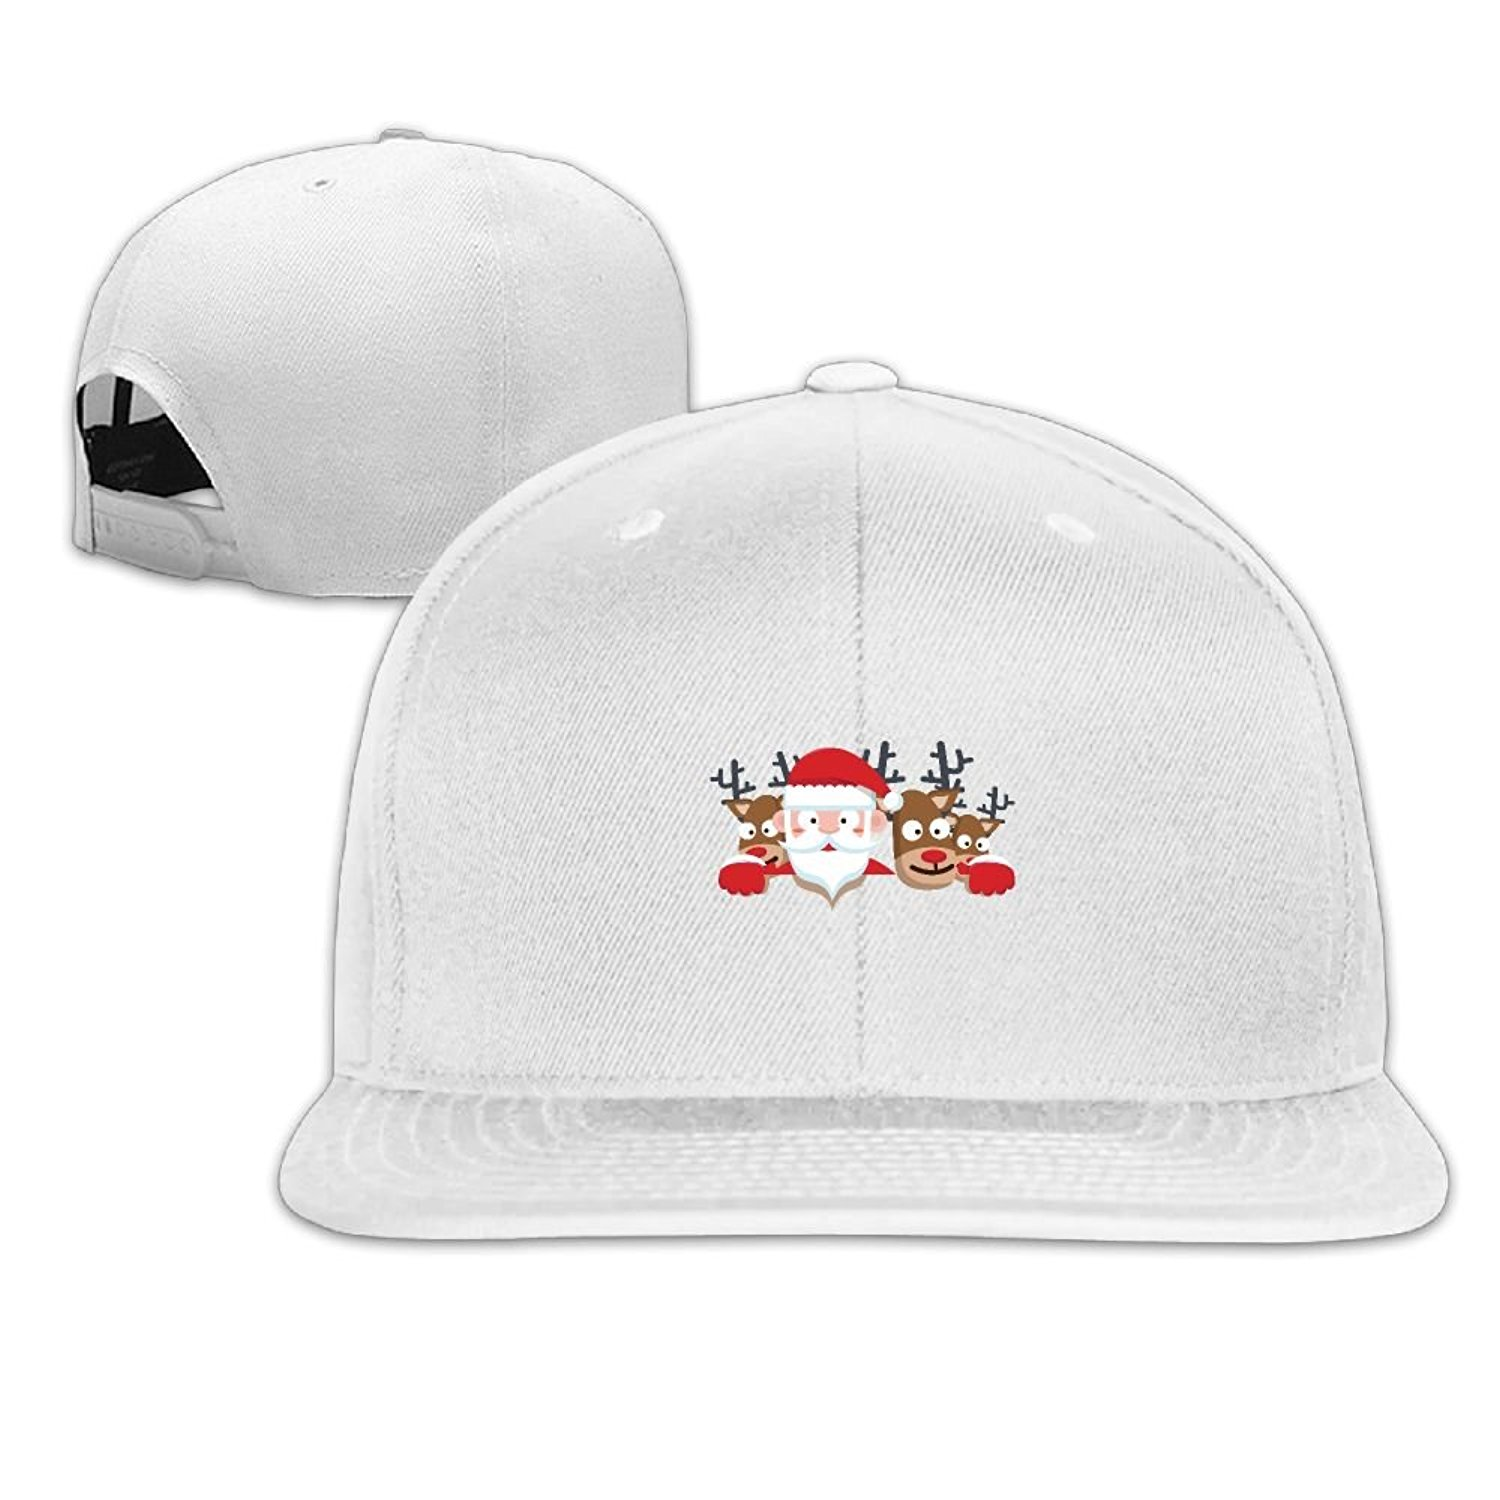 4ca74c8a5c184 Get Quotations · Simoner Santa Claus Hip Hop Baseball Caps Snapback Hats